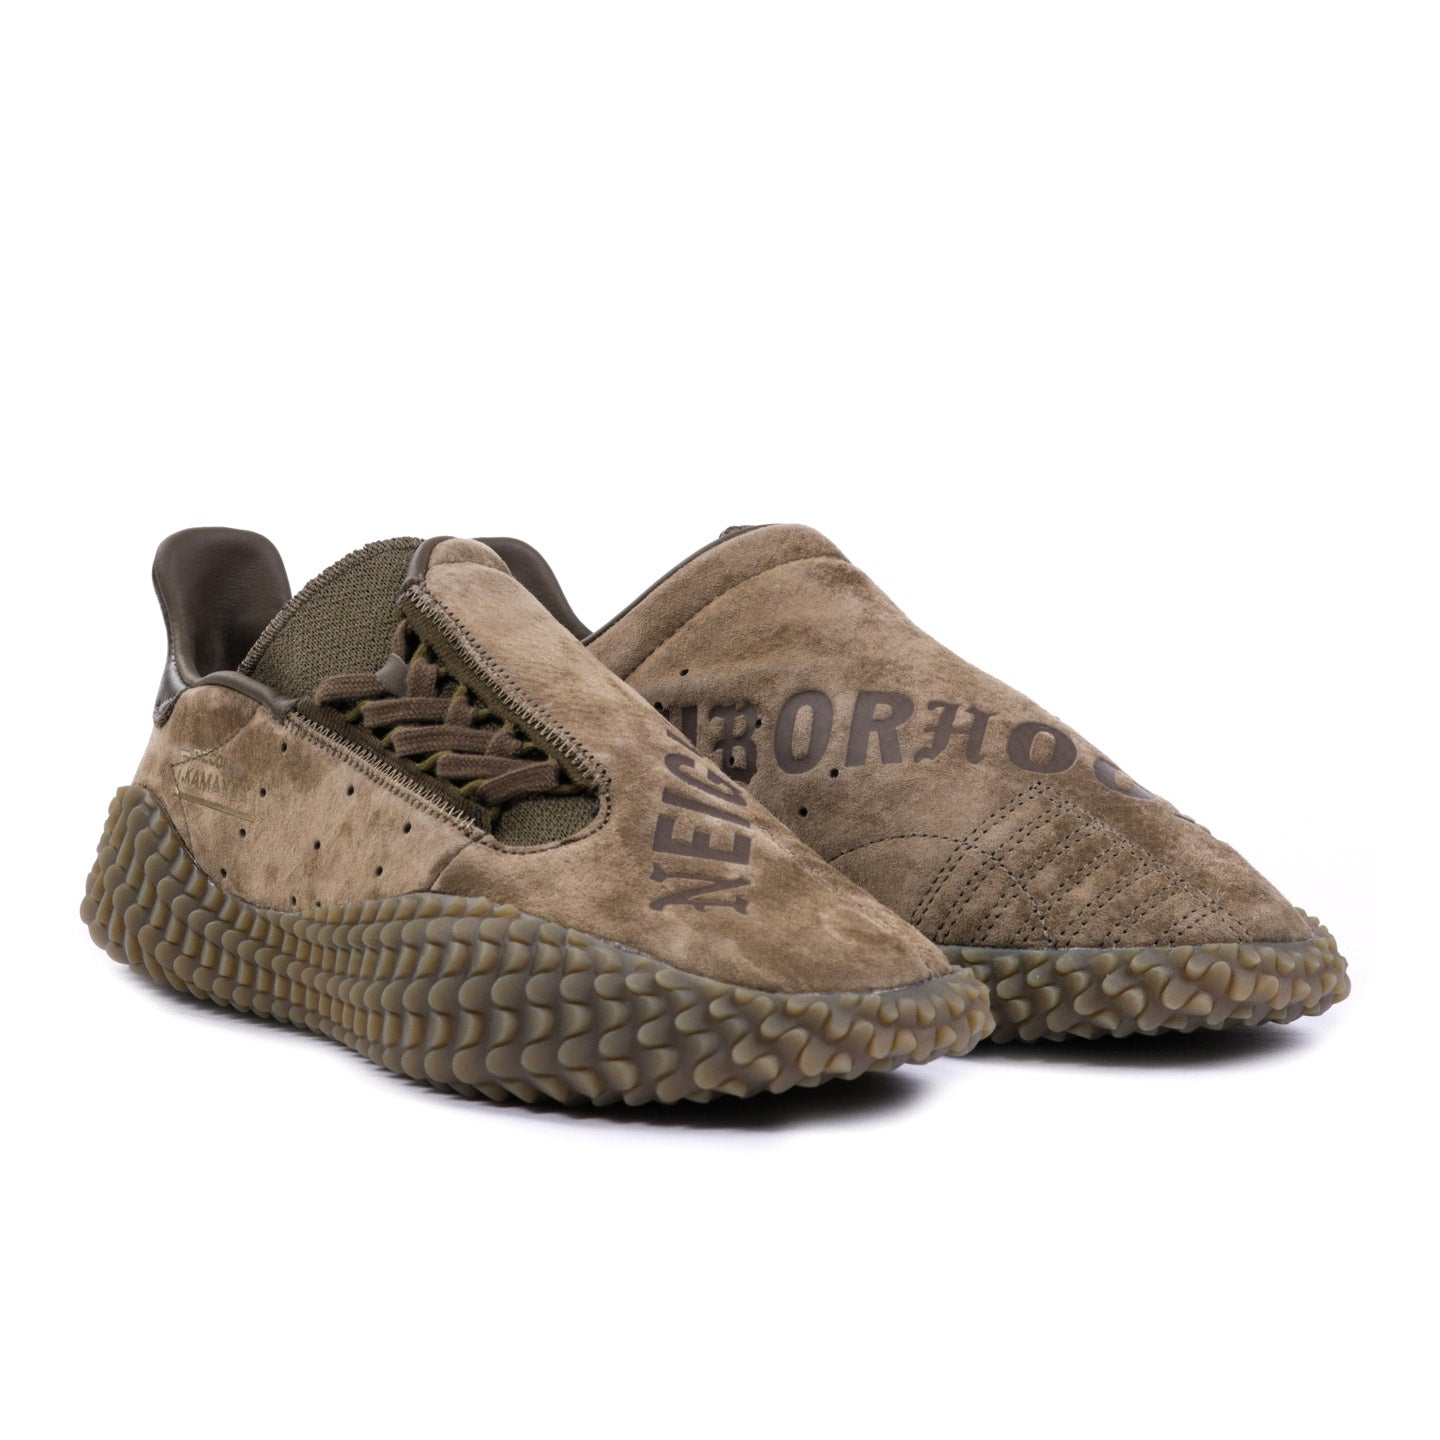 ADIDAS ORIGINALS BY WING + HORNS CAMPUS SHIFT GREY